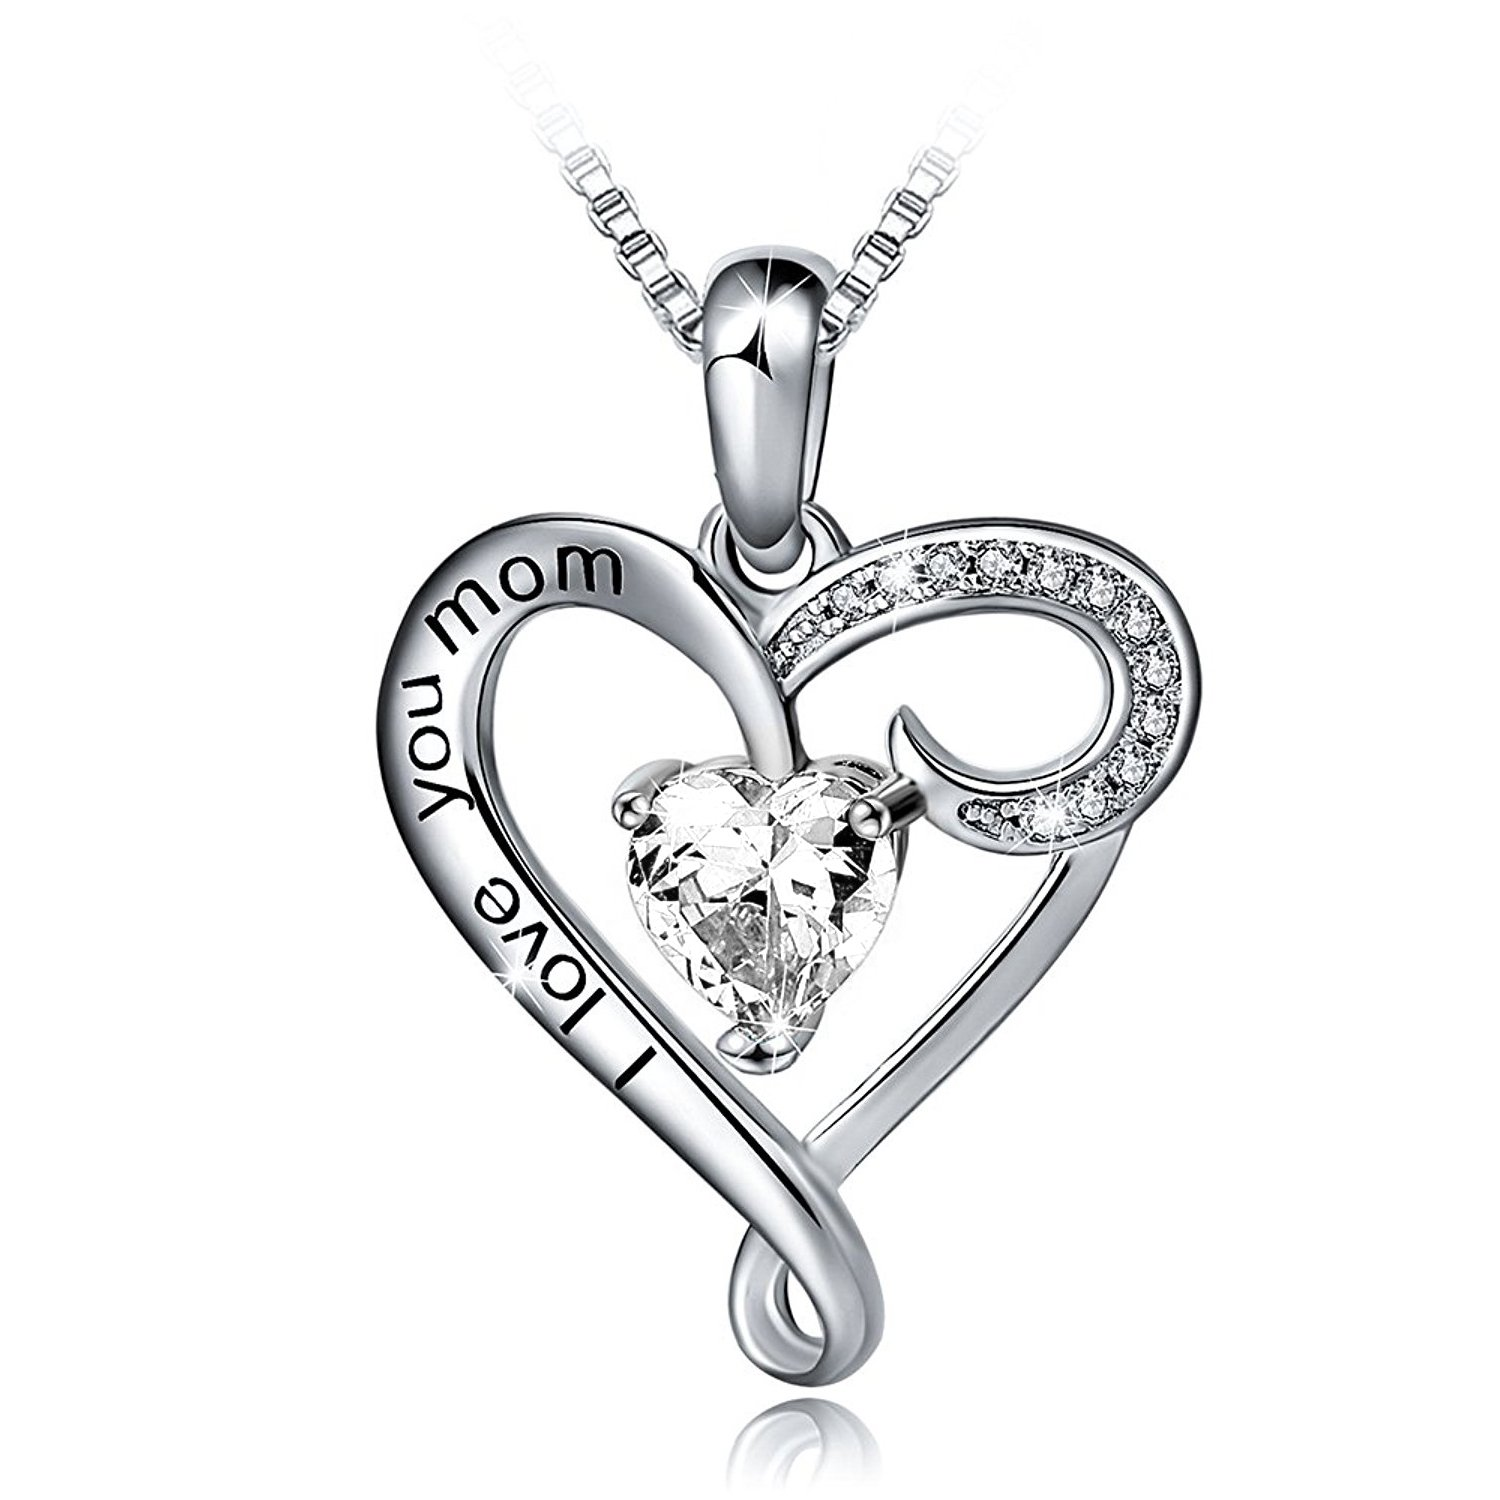 HACOOL Mother's Birthday gift 925 Sterling Silver Jewelry I Love You Mom Love Heart Pendant Necklace